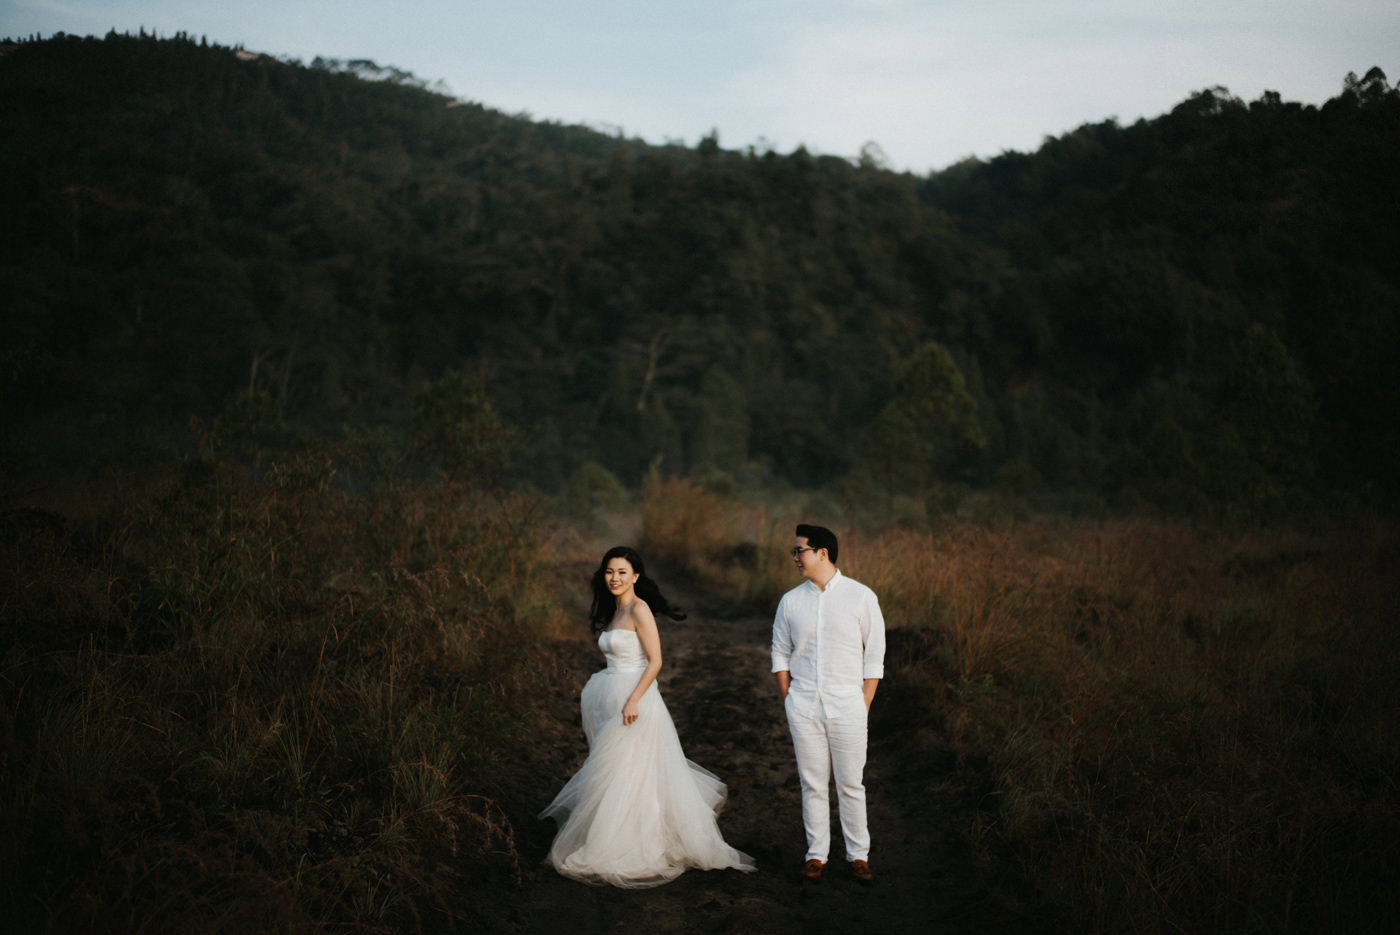 kintamani prewedding caroline ryan connection session iluminen bali wedding photographer destination photography mount batur